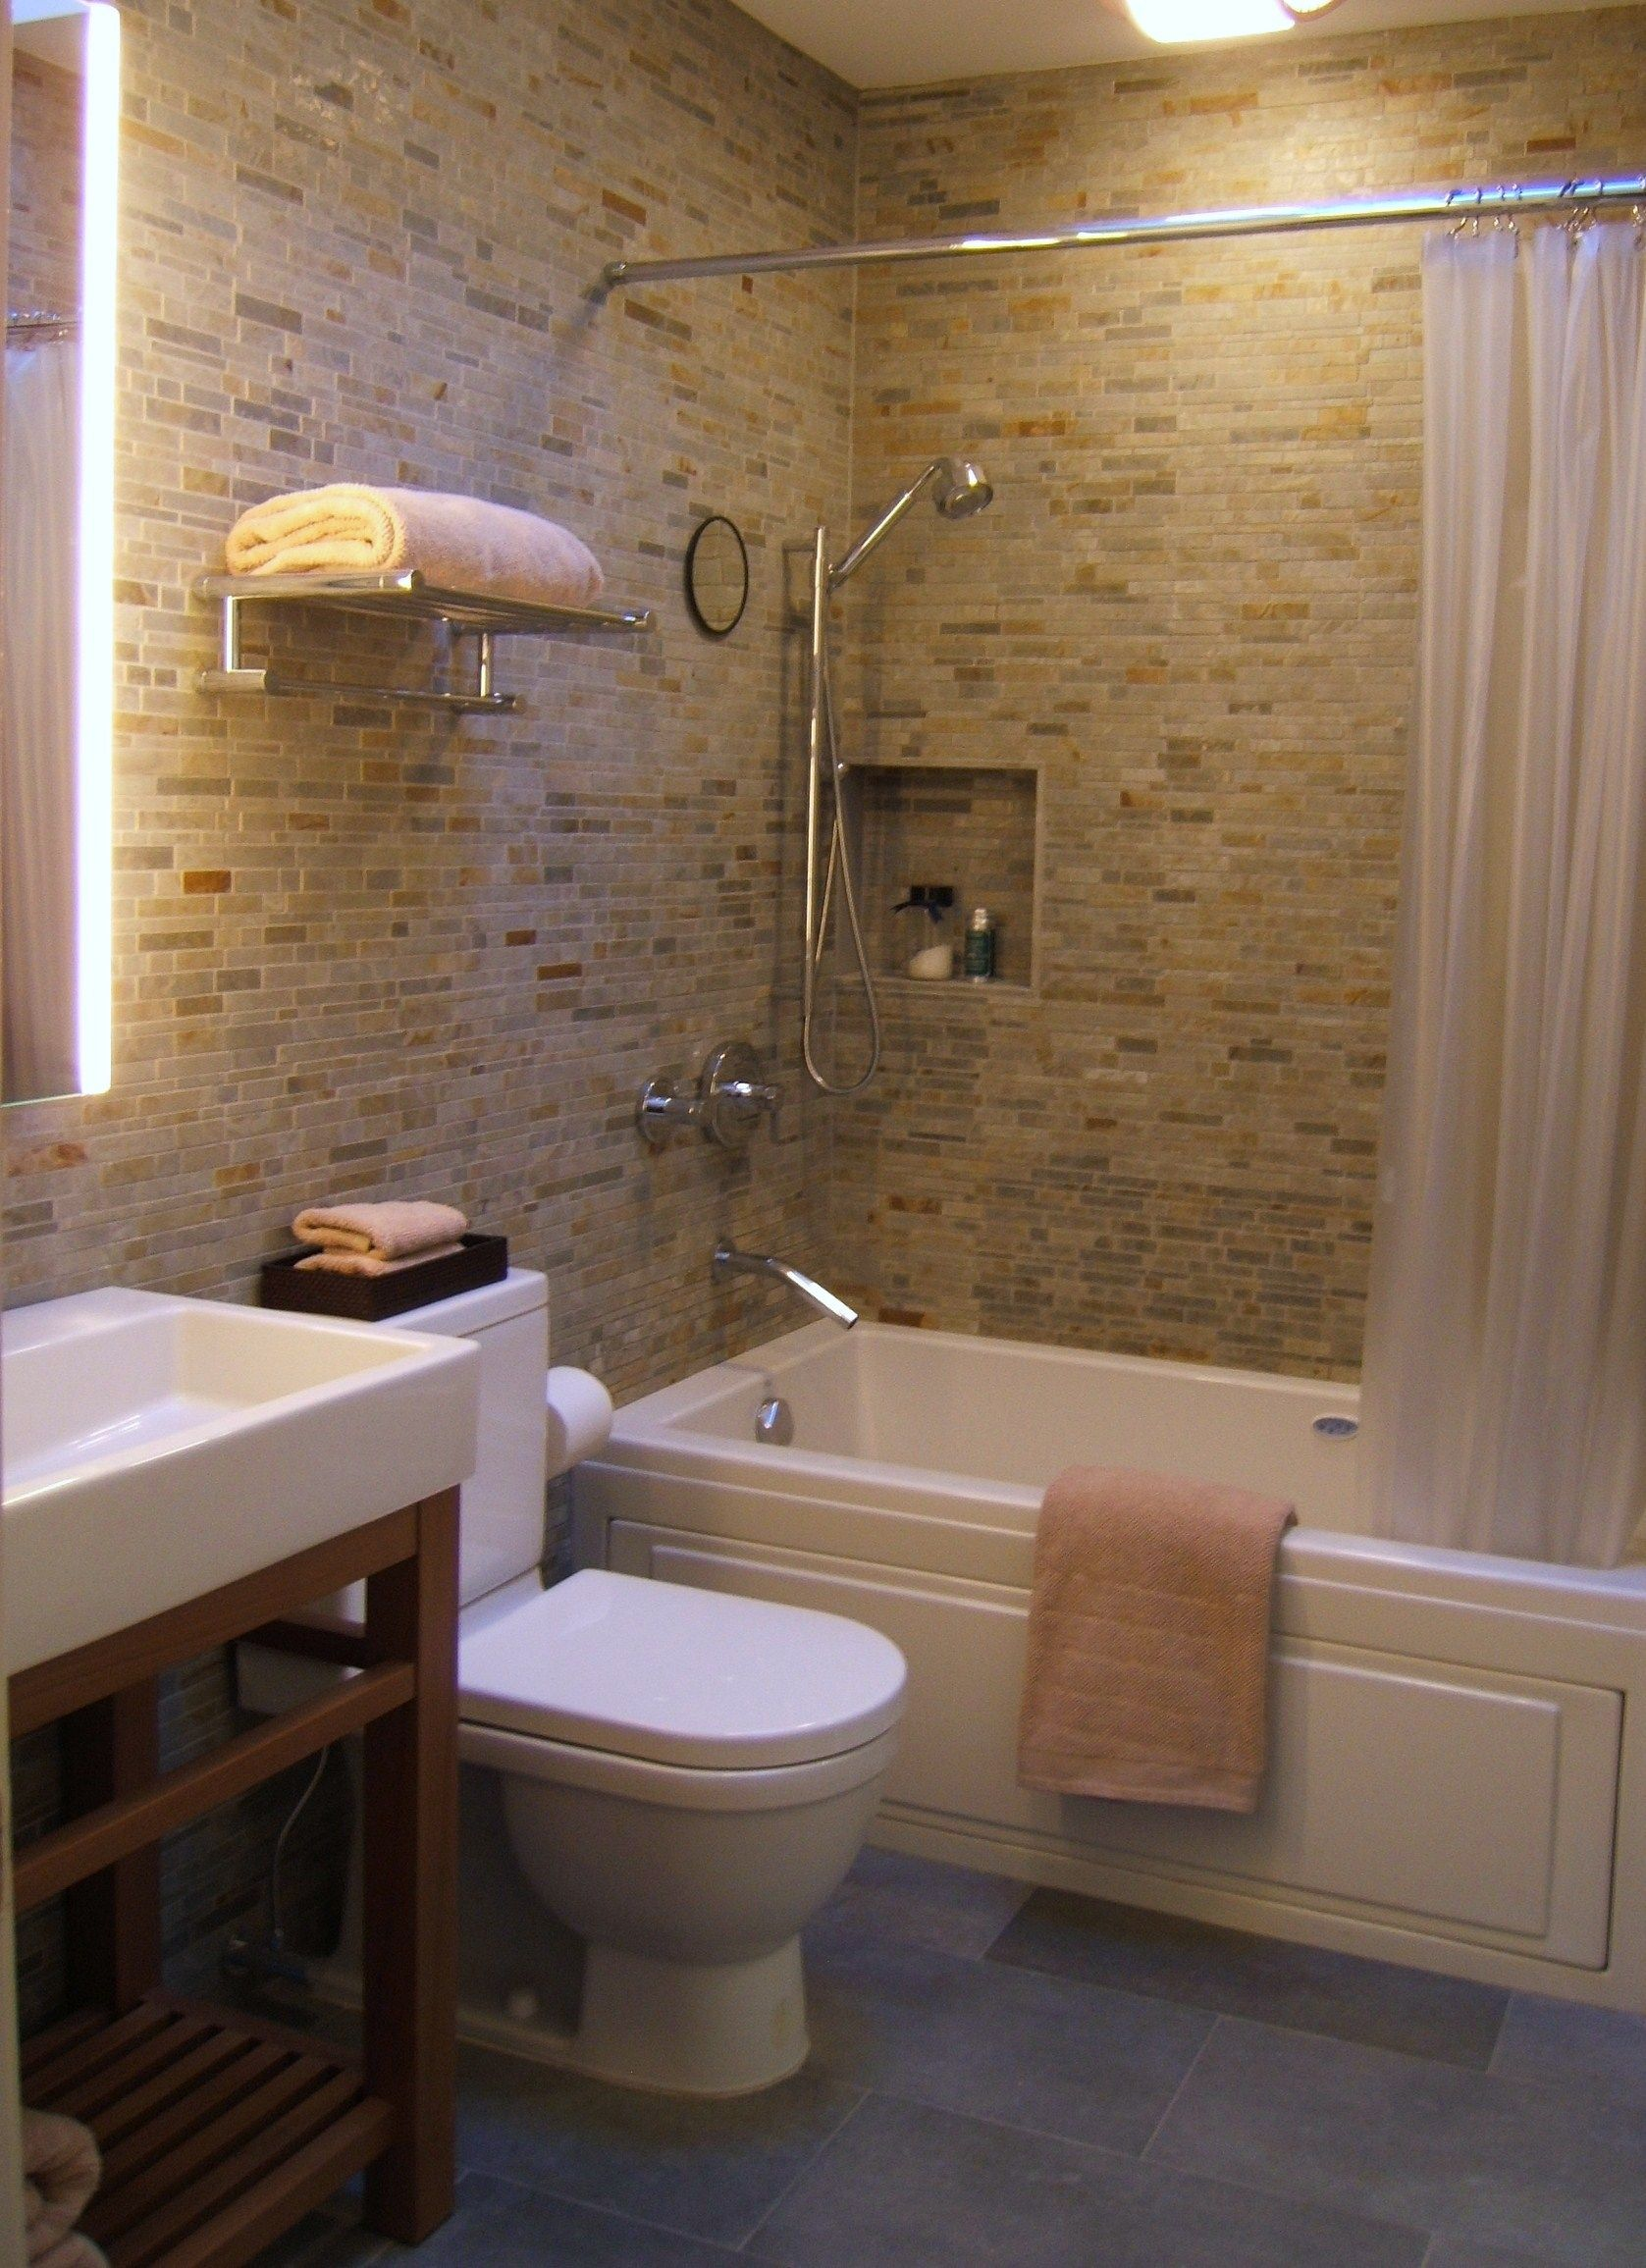 Small bathroom designs south africa small bath for 8x4 bathroom design